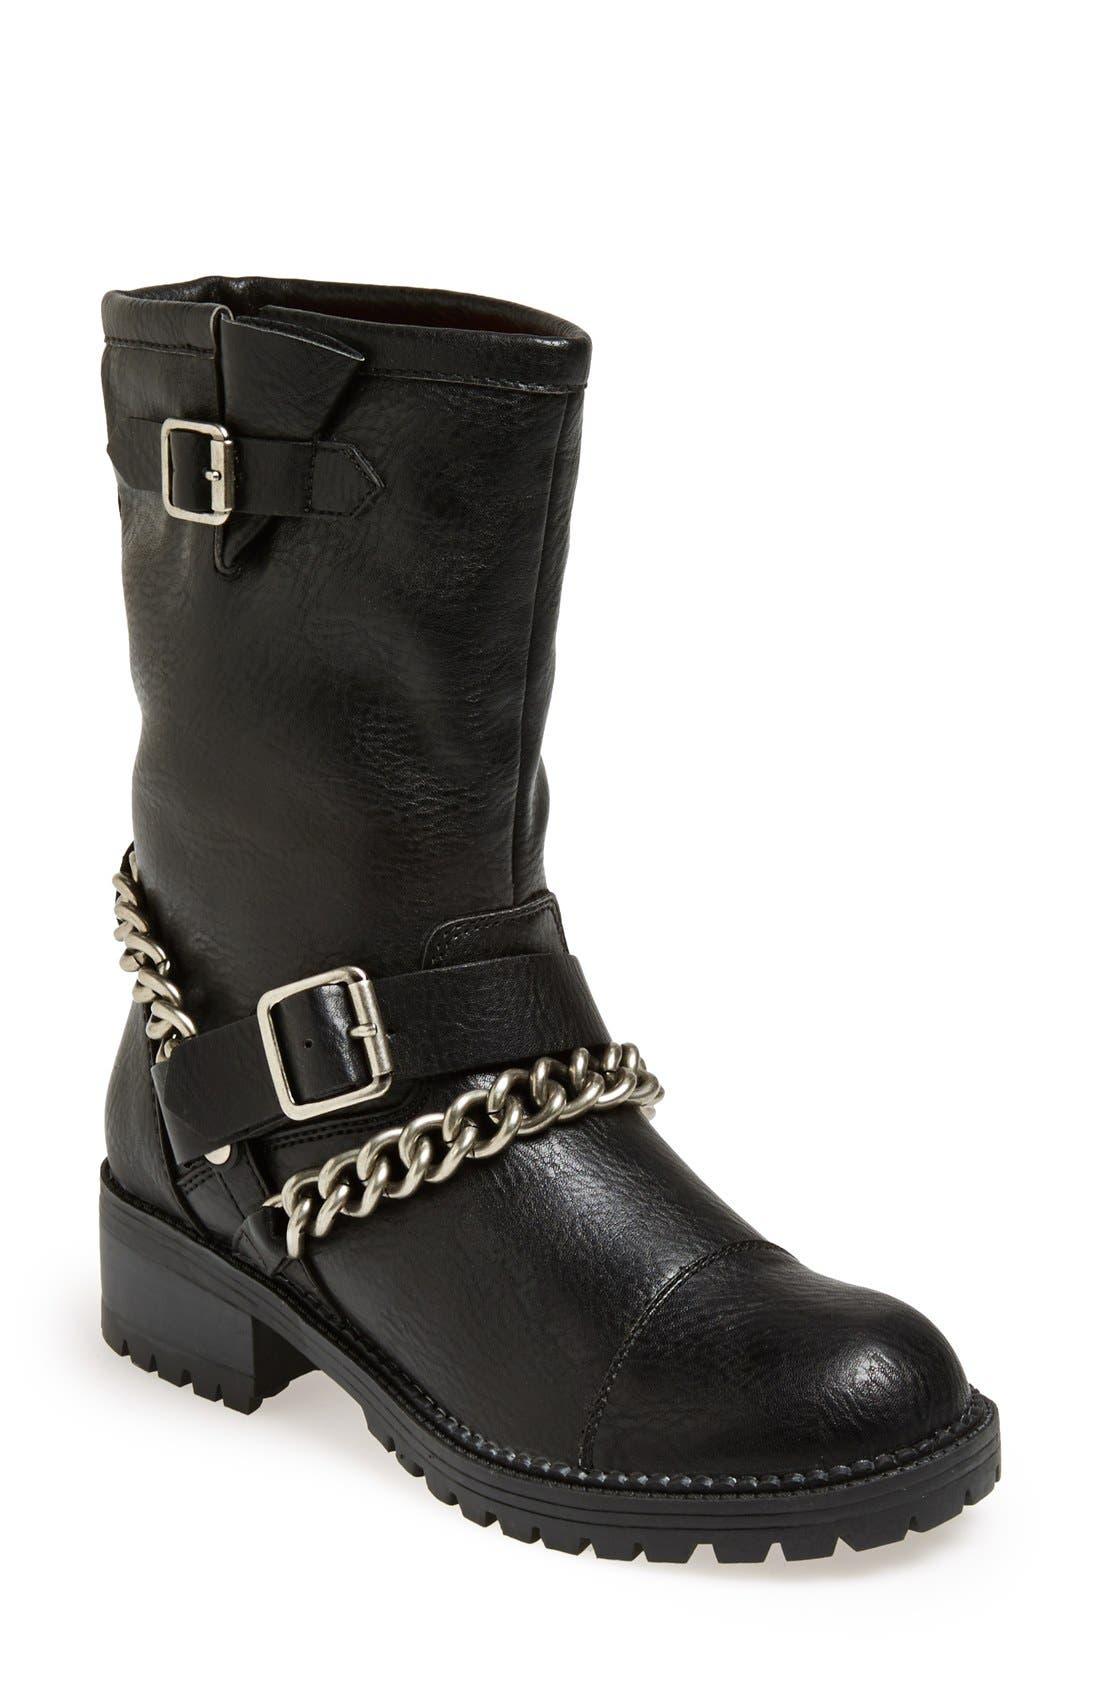 KENDALL + KYLIE Madden Girl 'Bedforrd' Chain Wrapped Biker Bootie, Main, color, 003